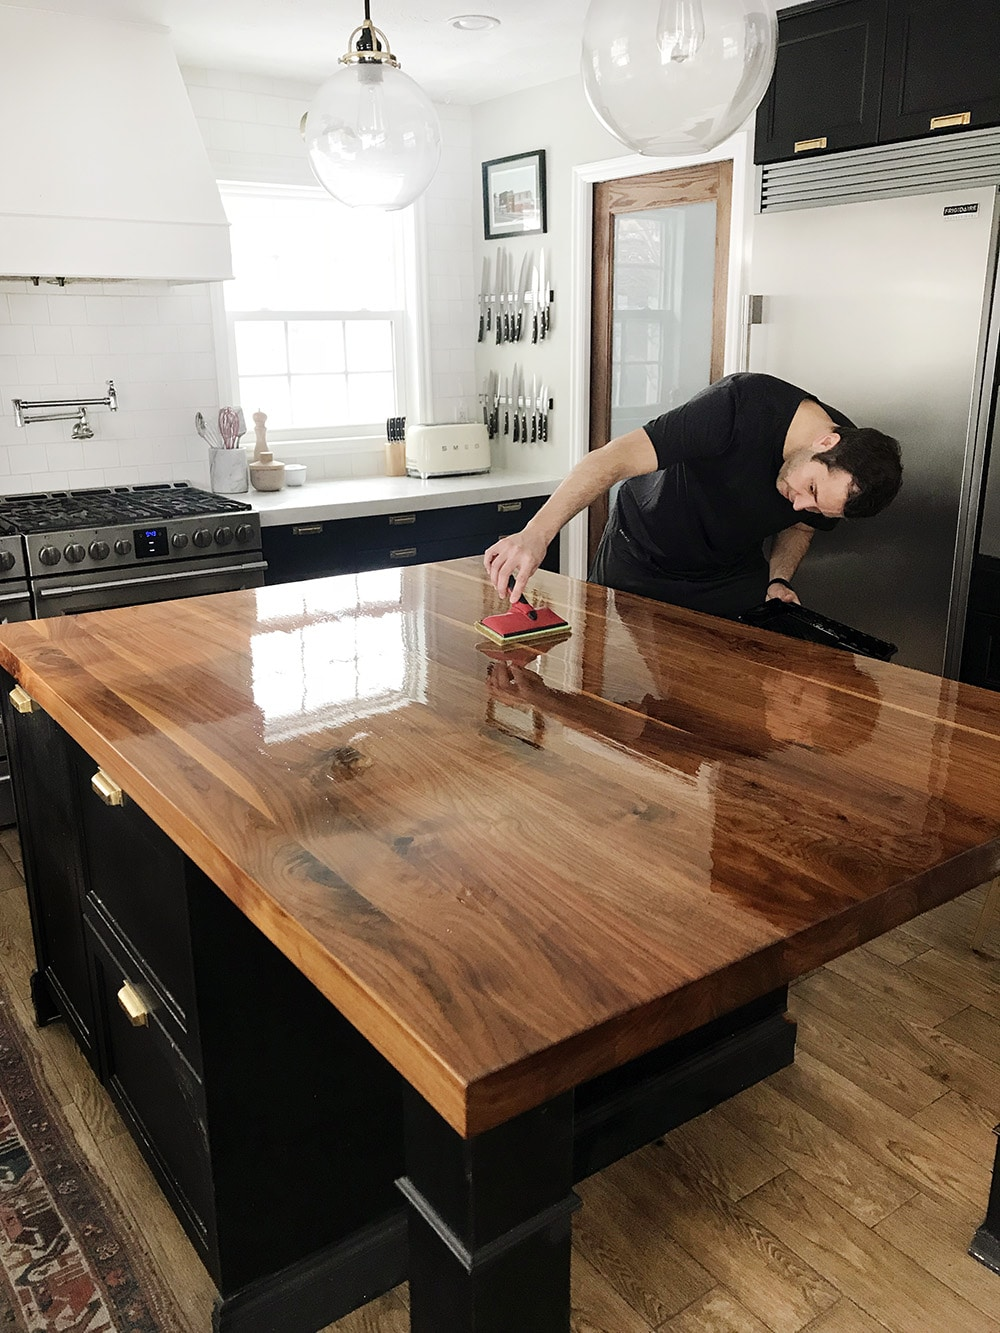 of choosing countertop like best for wood size j butcher a block bathroom lowes board enchanting cutting large rustic stunning countertops integrated island real stainless steel sealer